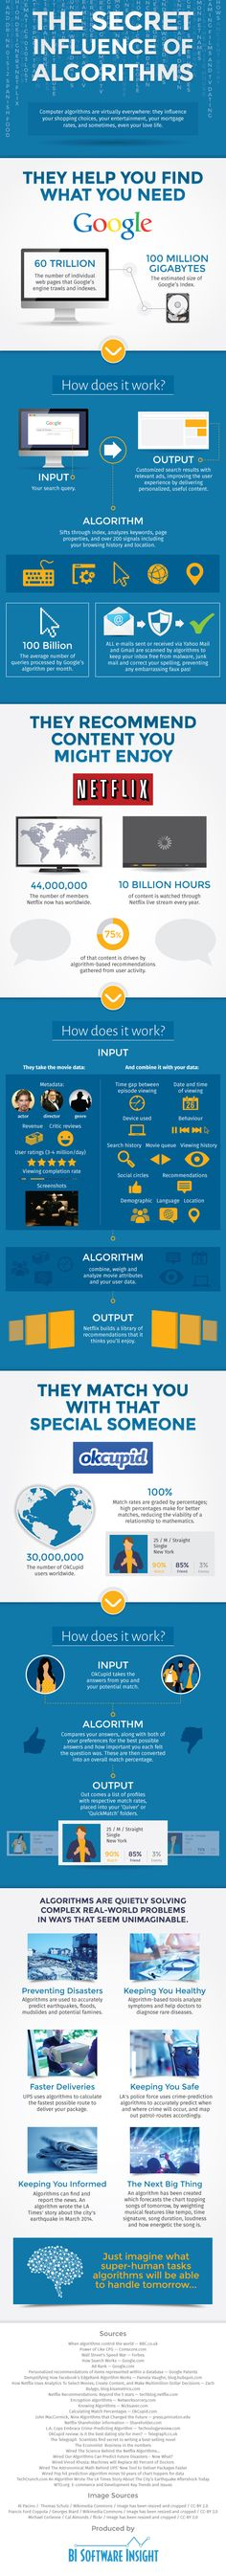 The Secret Influence of Algorithms   #Google #Internet | #Infographic repinned by @Piktochart | Create yours at www.piktochart.com